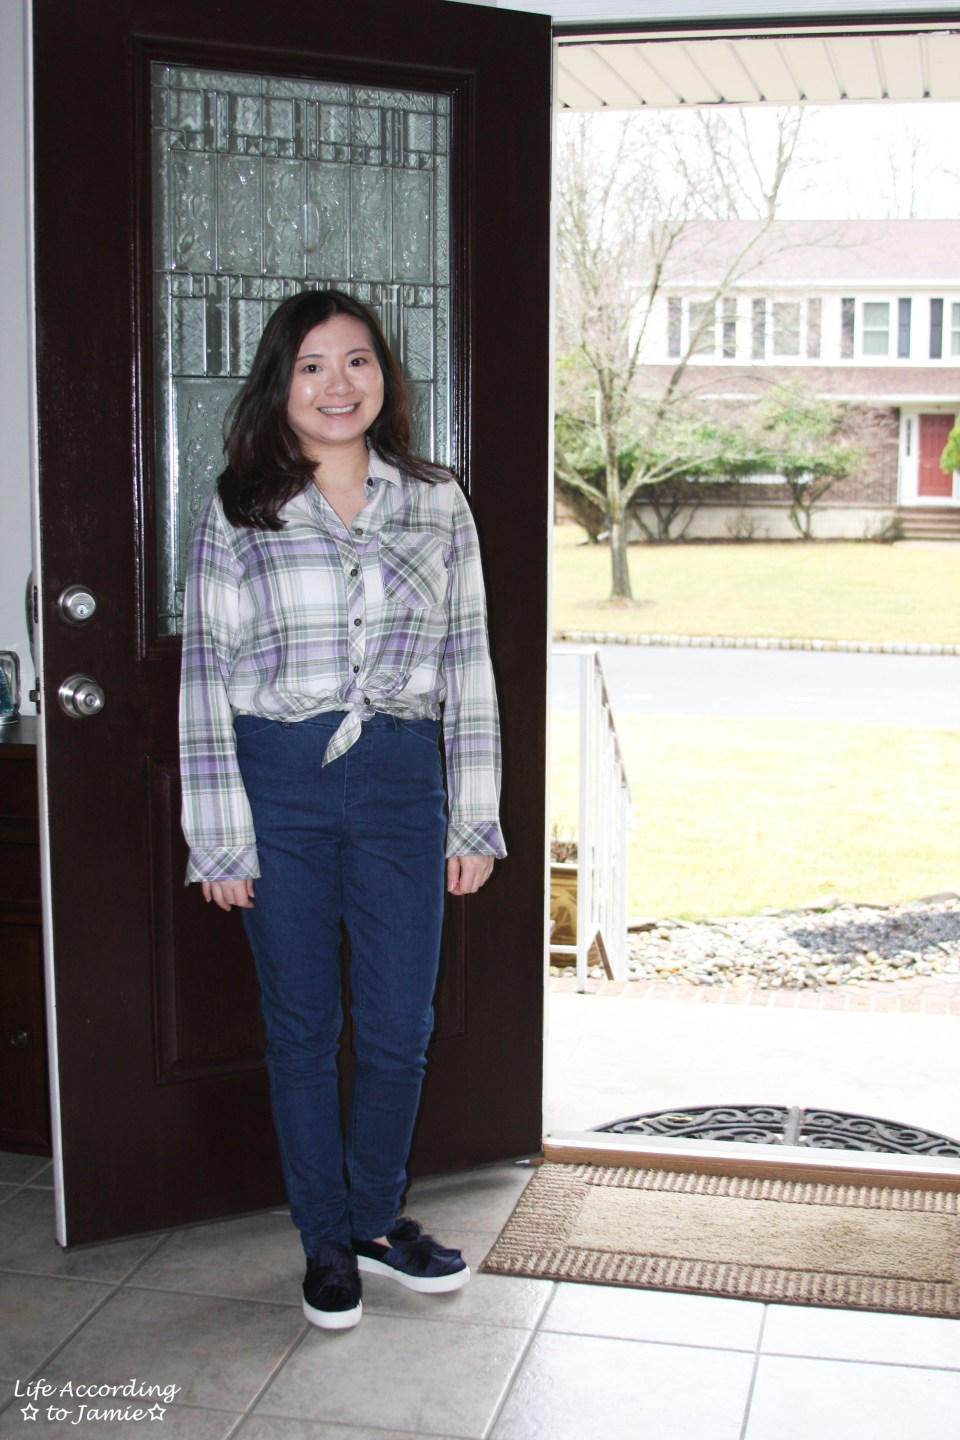 Tied Plaid Top + High Waisted Jeans 11